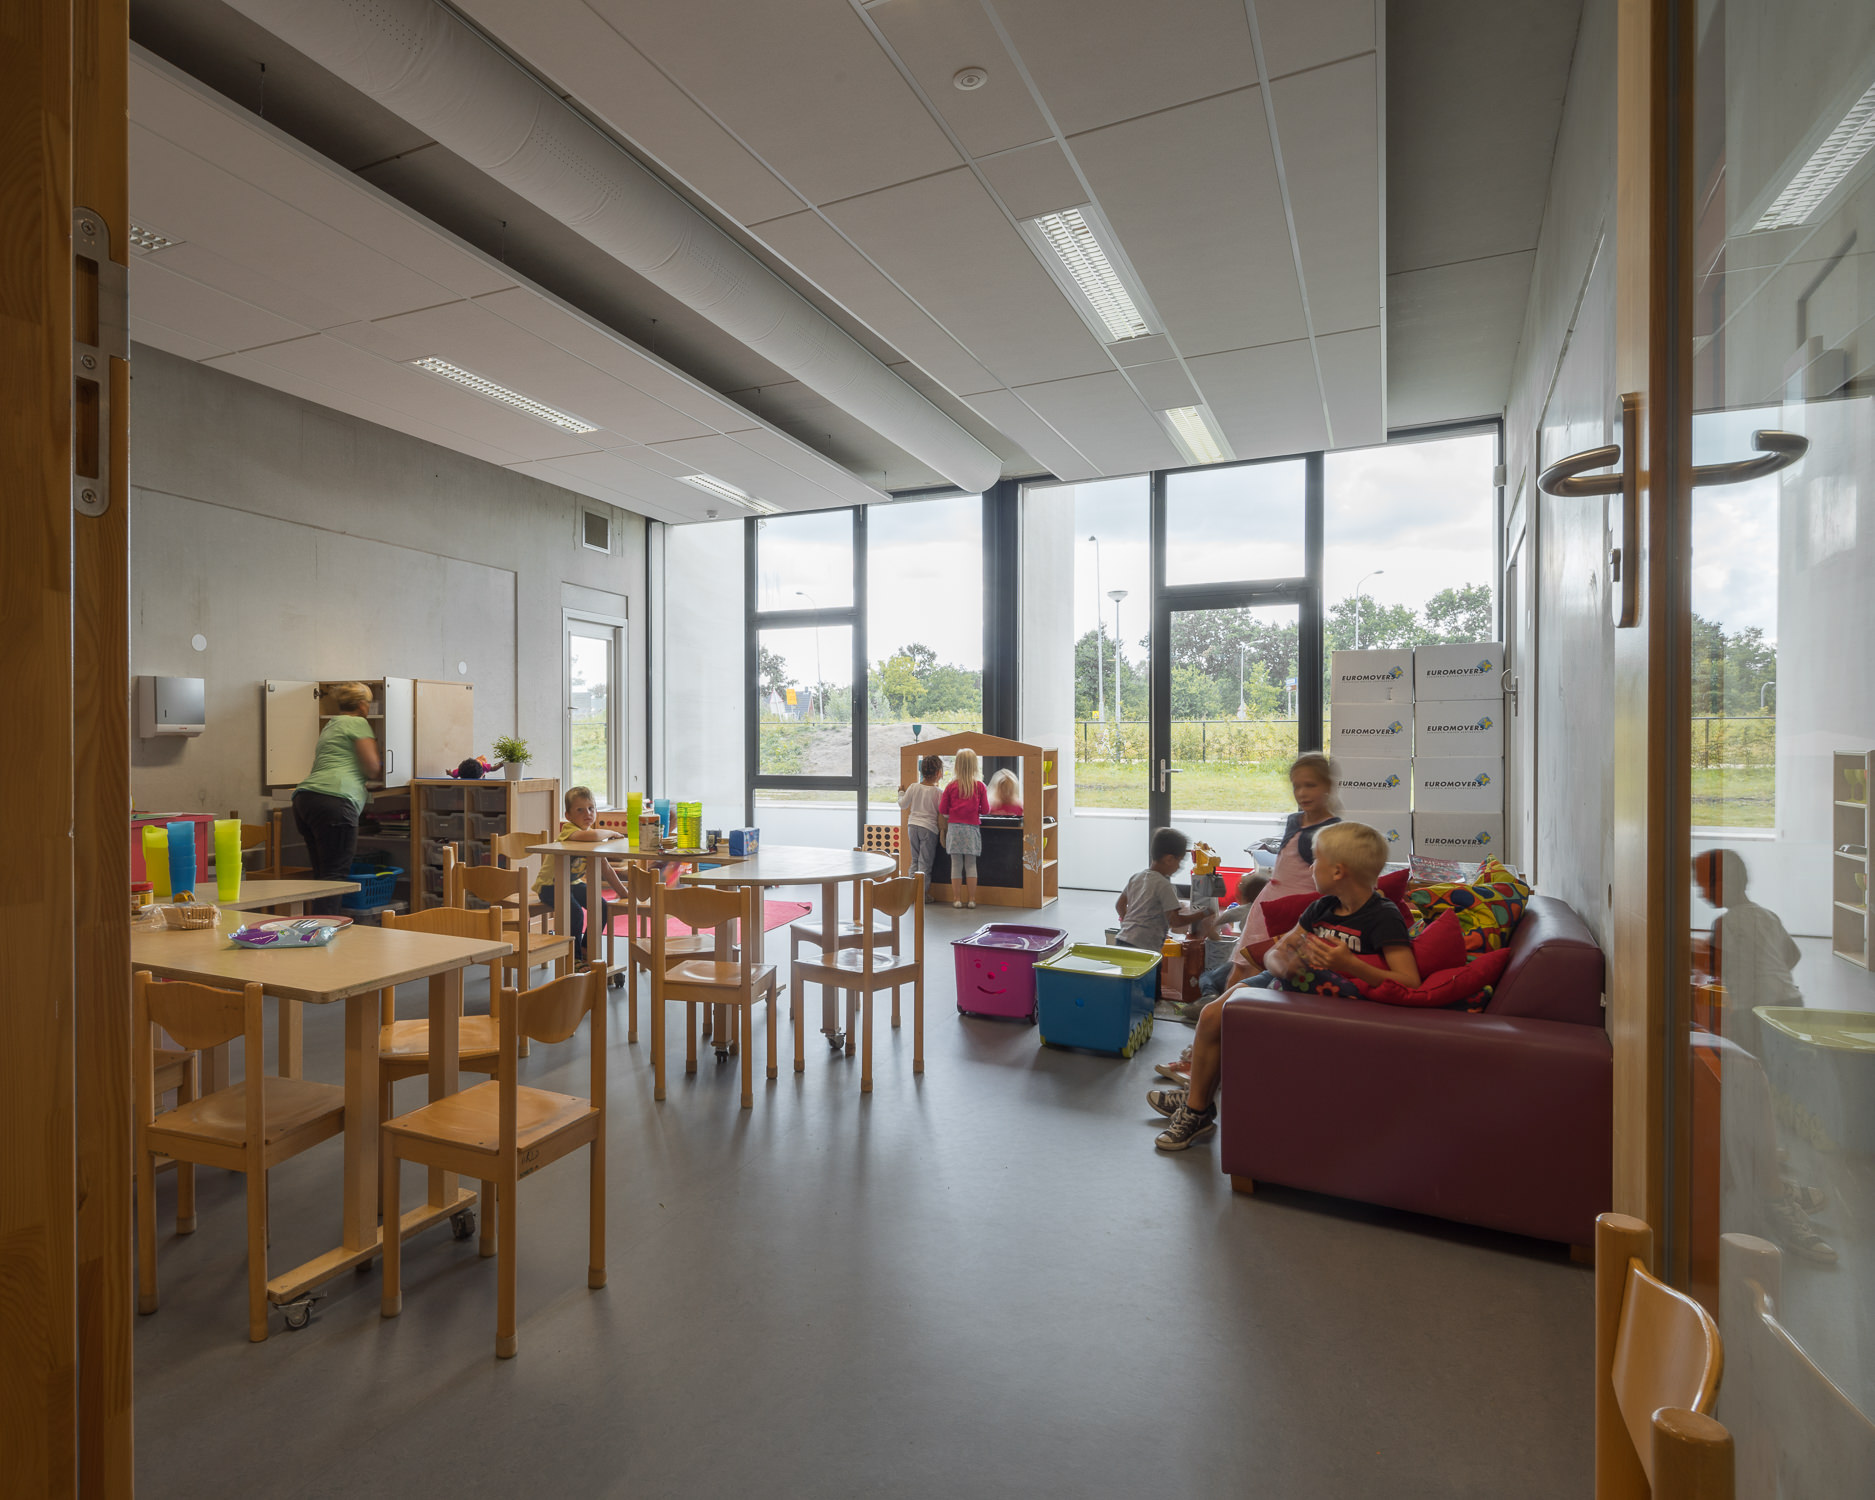 mark-hadden-architecture-photographer-architectuur-interieur-fotografie-london-amsterdam-team-4-zuidhorn-school-111-2.jpg